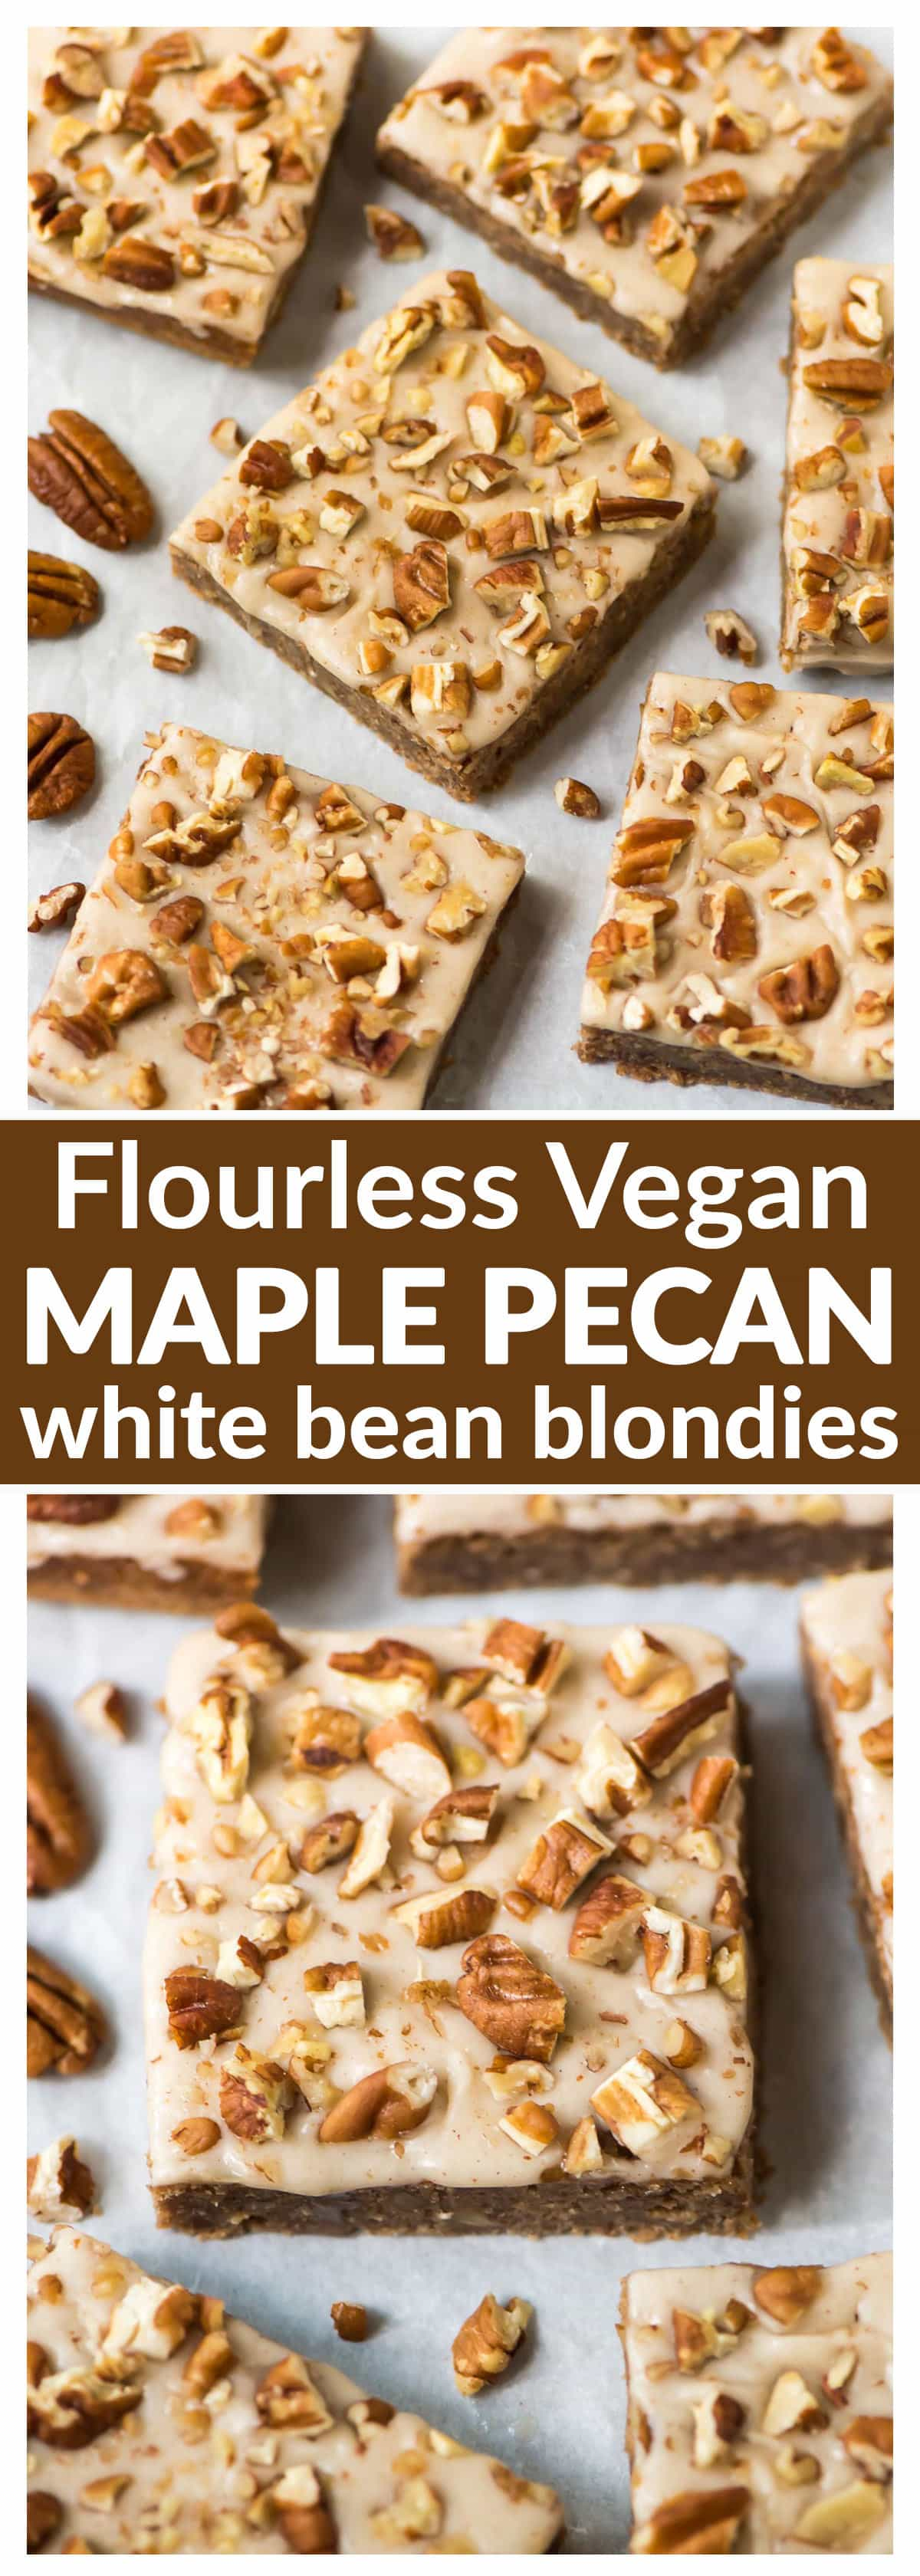 Soft and chewy Flourless Vegan Maple Pecan Blondies. Secretly healthy and made with white beans or chickpeas, maple syrup, oats, and coconut oil. SNO butter, gluten free and absolutely delicious!